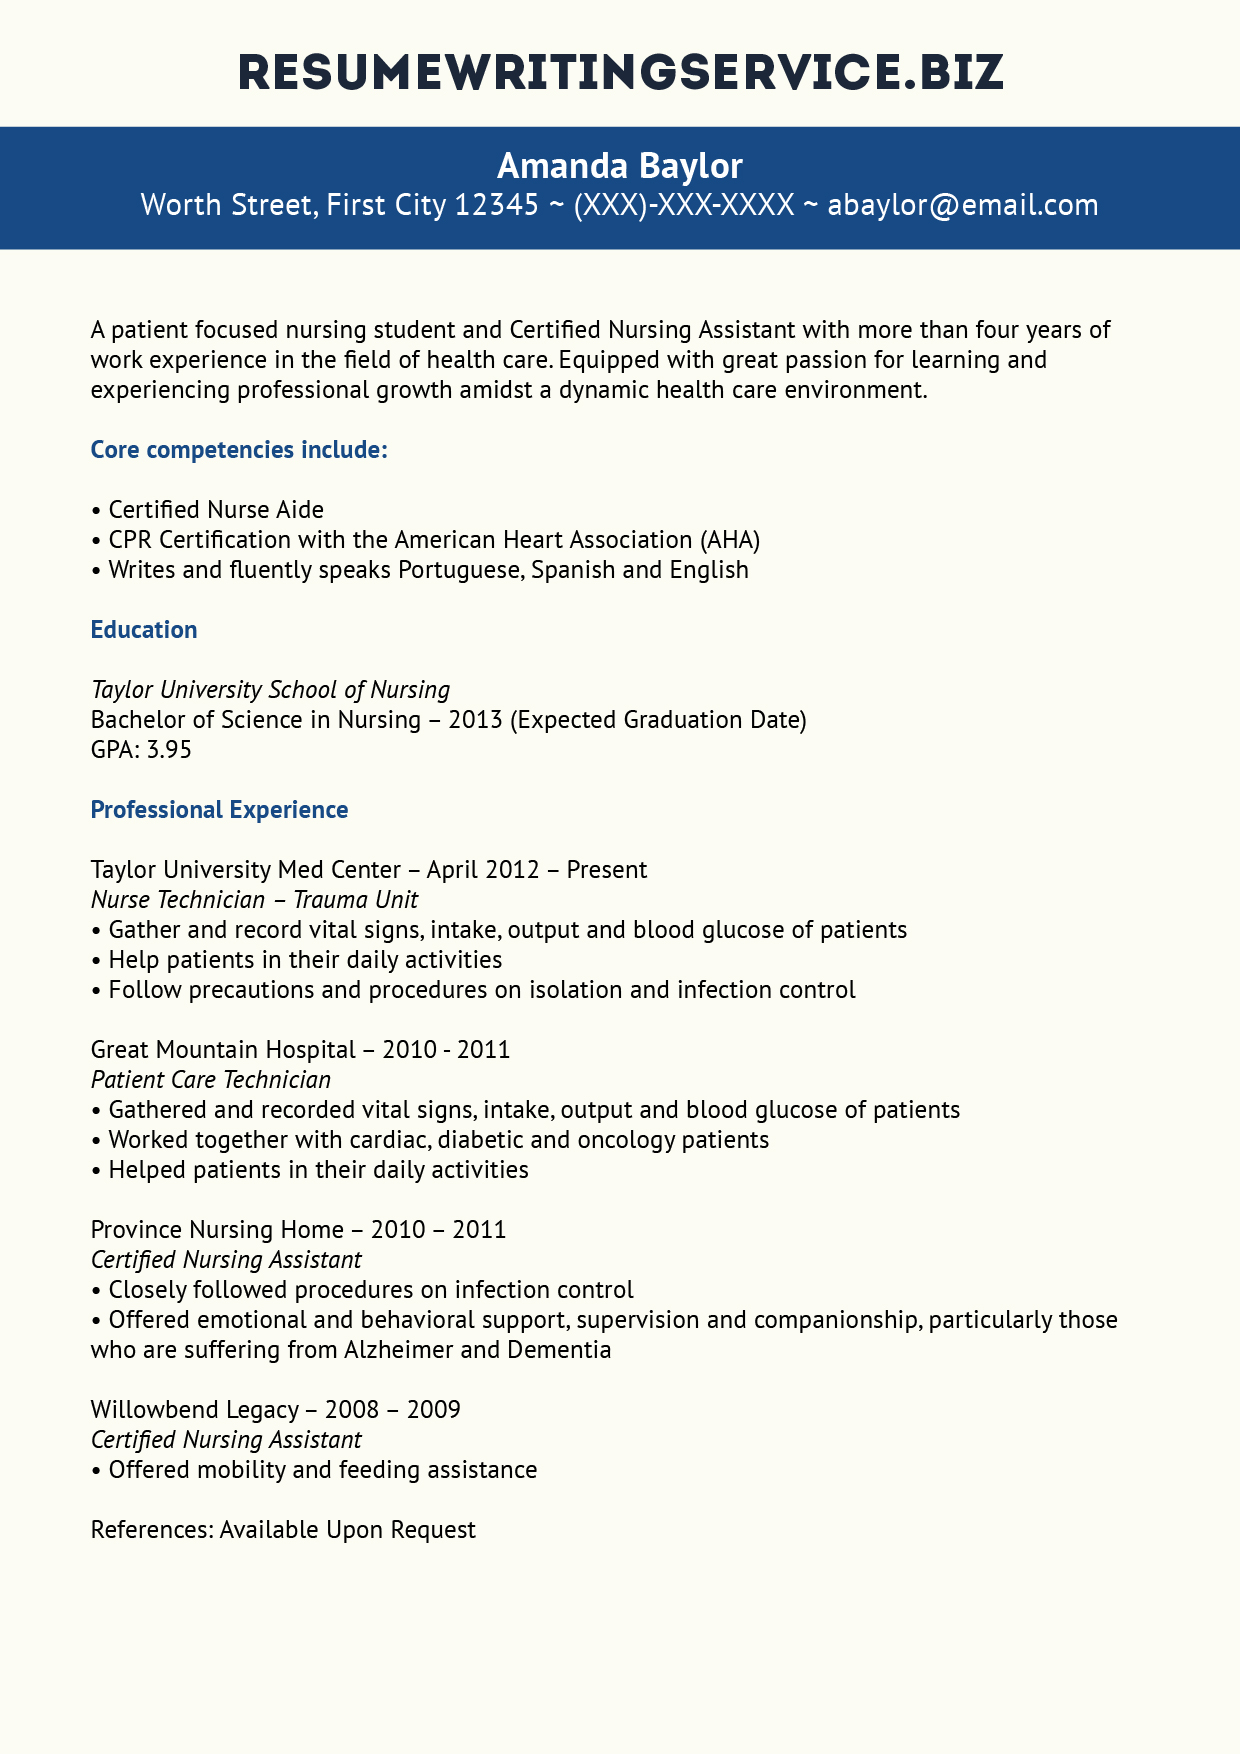 Nj Resume Service Great Nursing Student Resume Sample